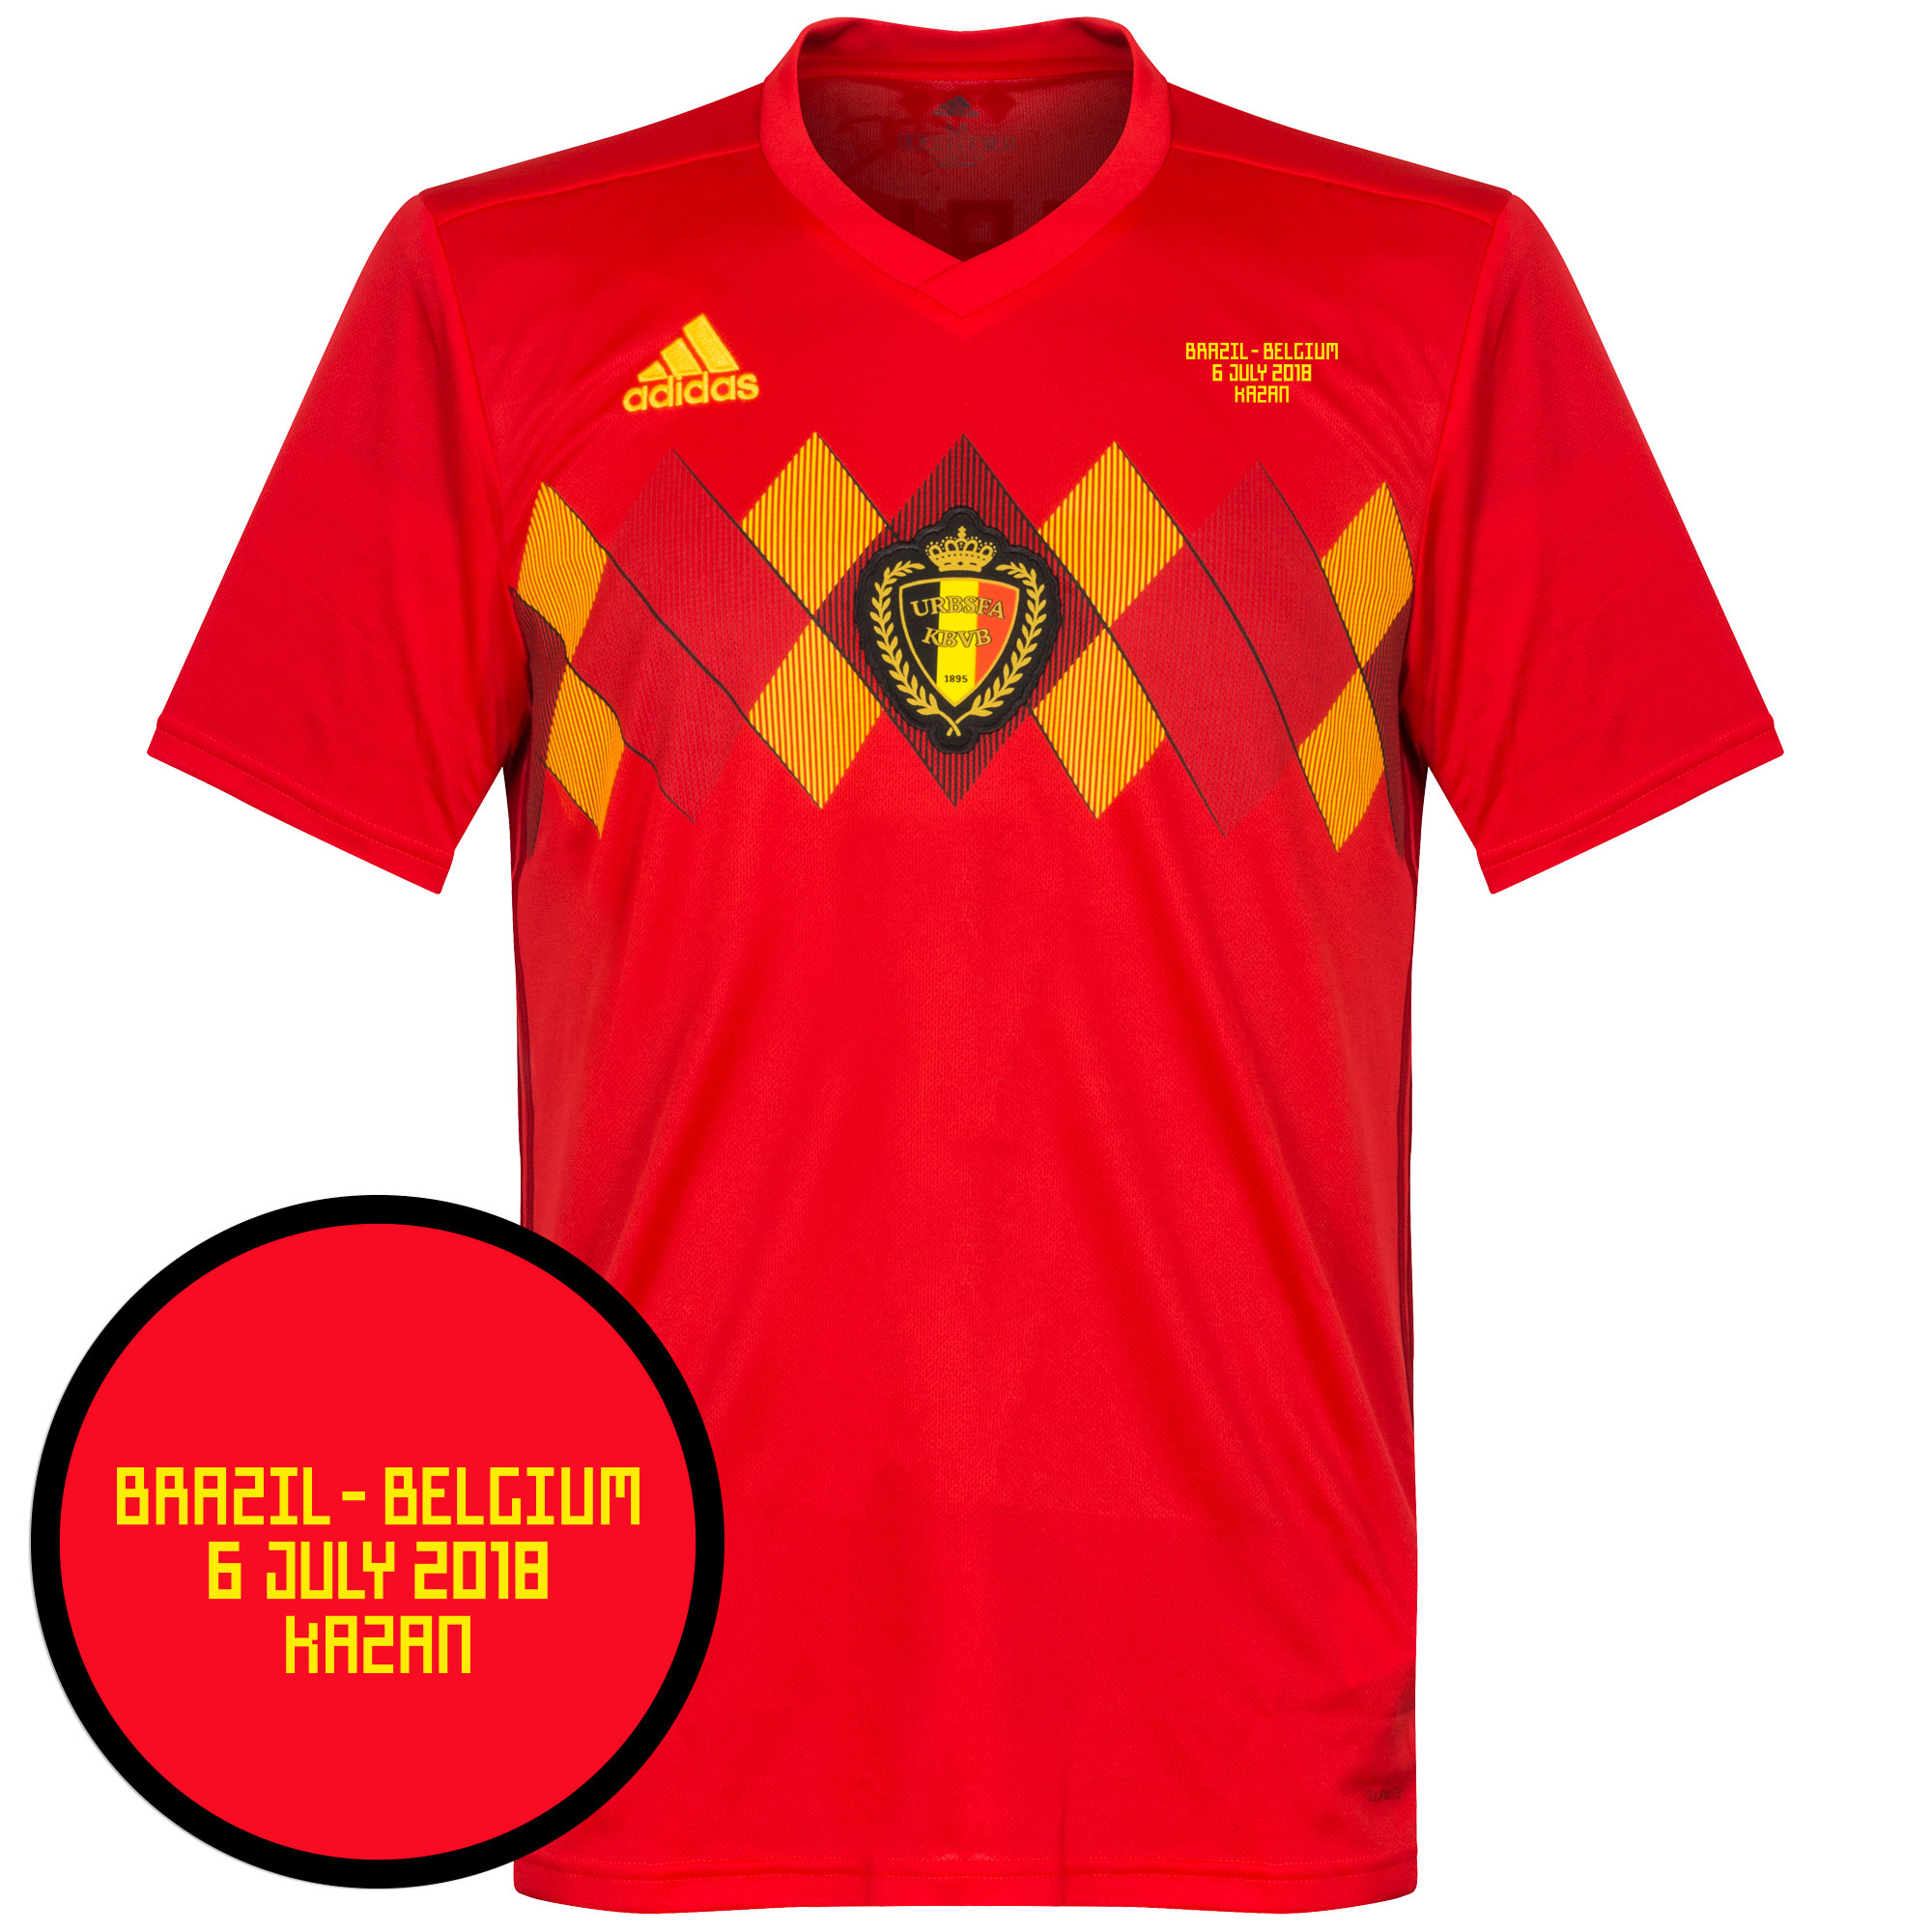 ce6895e68af Belgium Kits | Belgium Football Kits | Belgium Home Football Kits